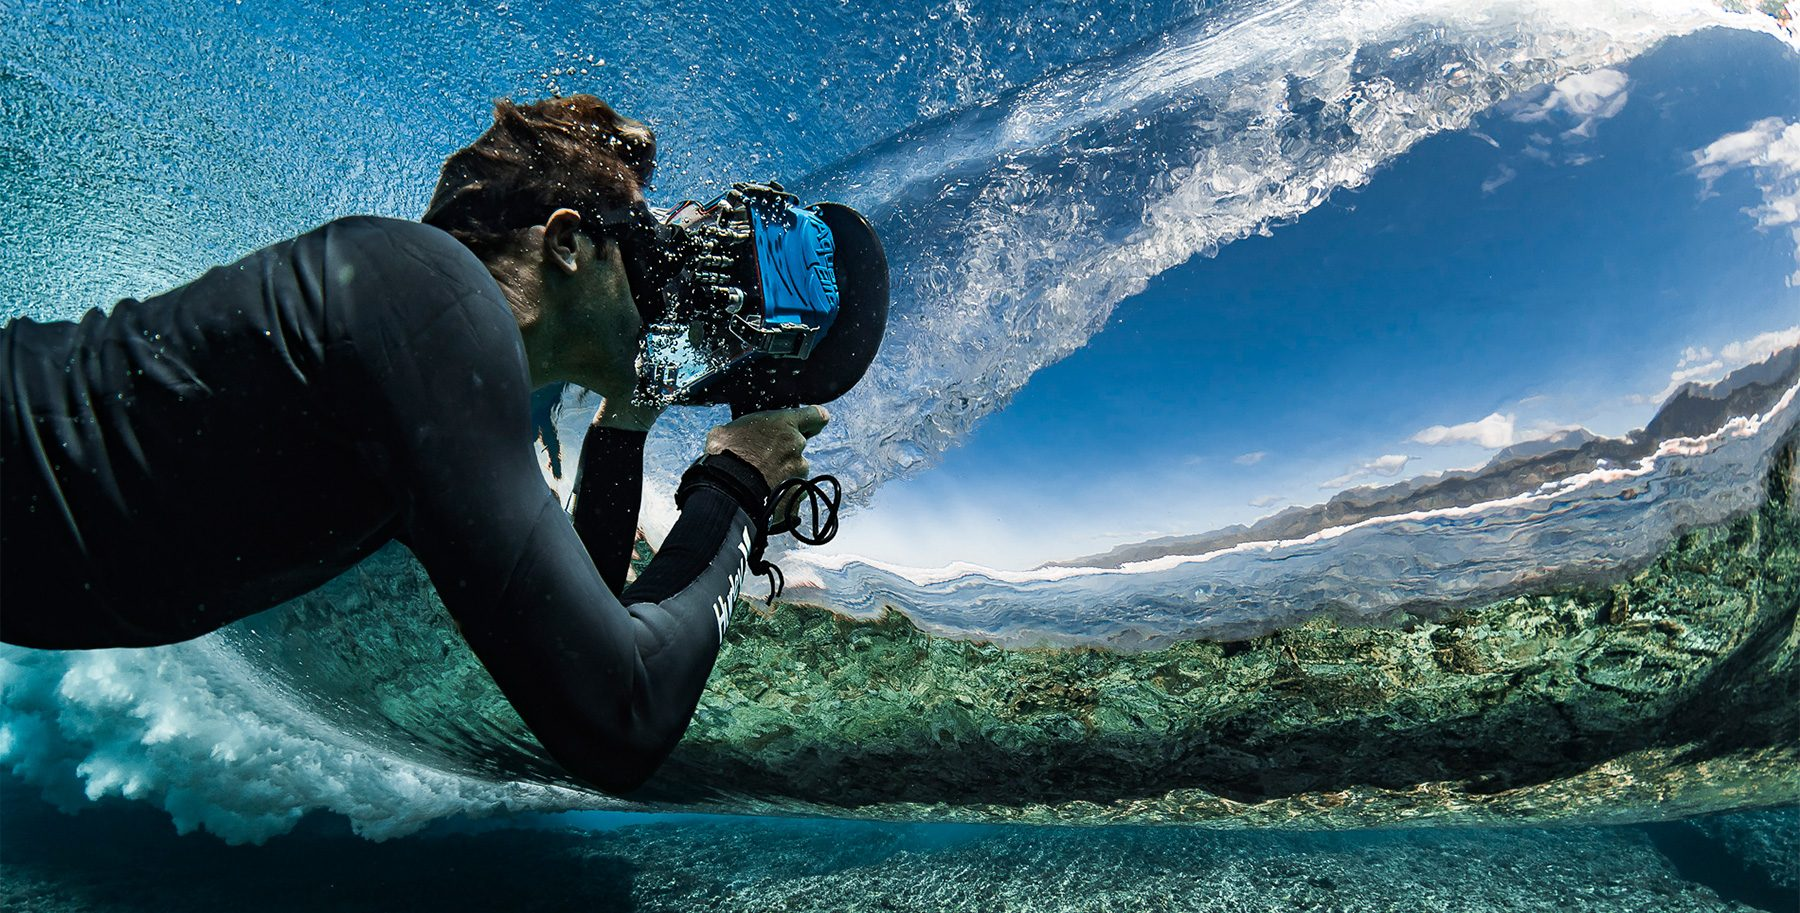 Ripple Effect: An Ocean Photographer's Powerful Images Inspire Conservation